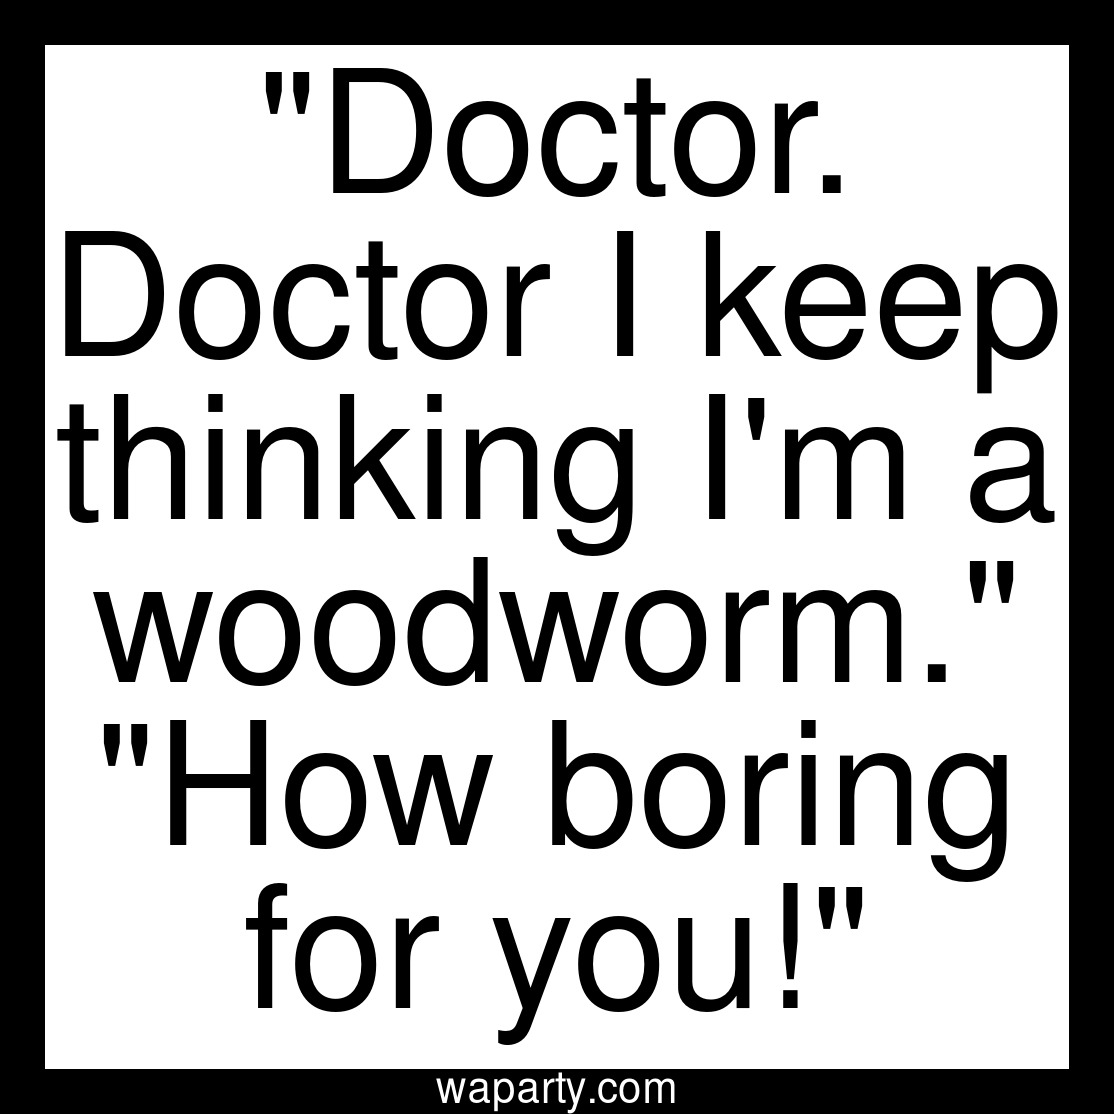 Doctor. Doctor I keep thinking Im a woodworm. How boring for you!